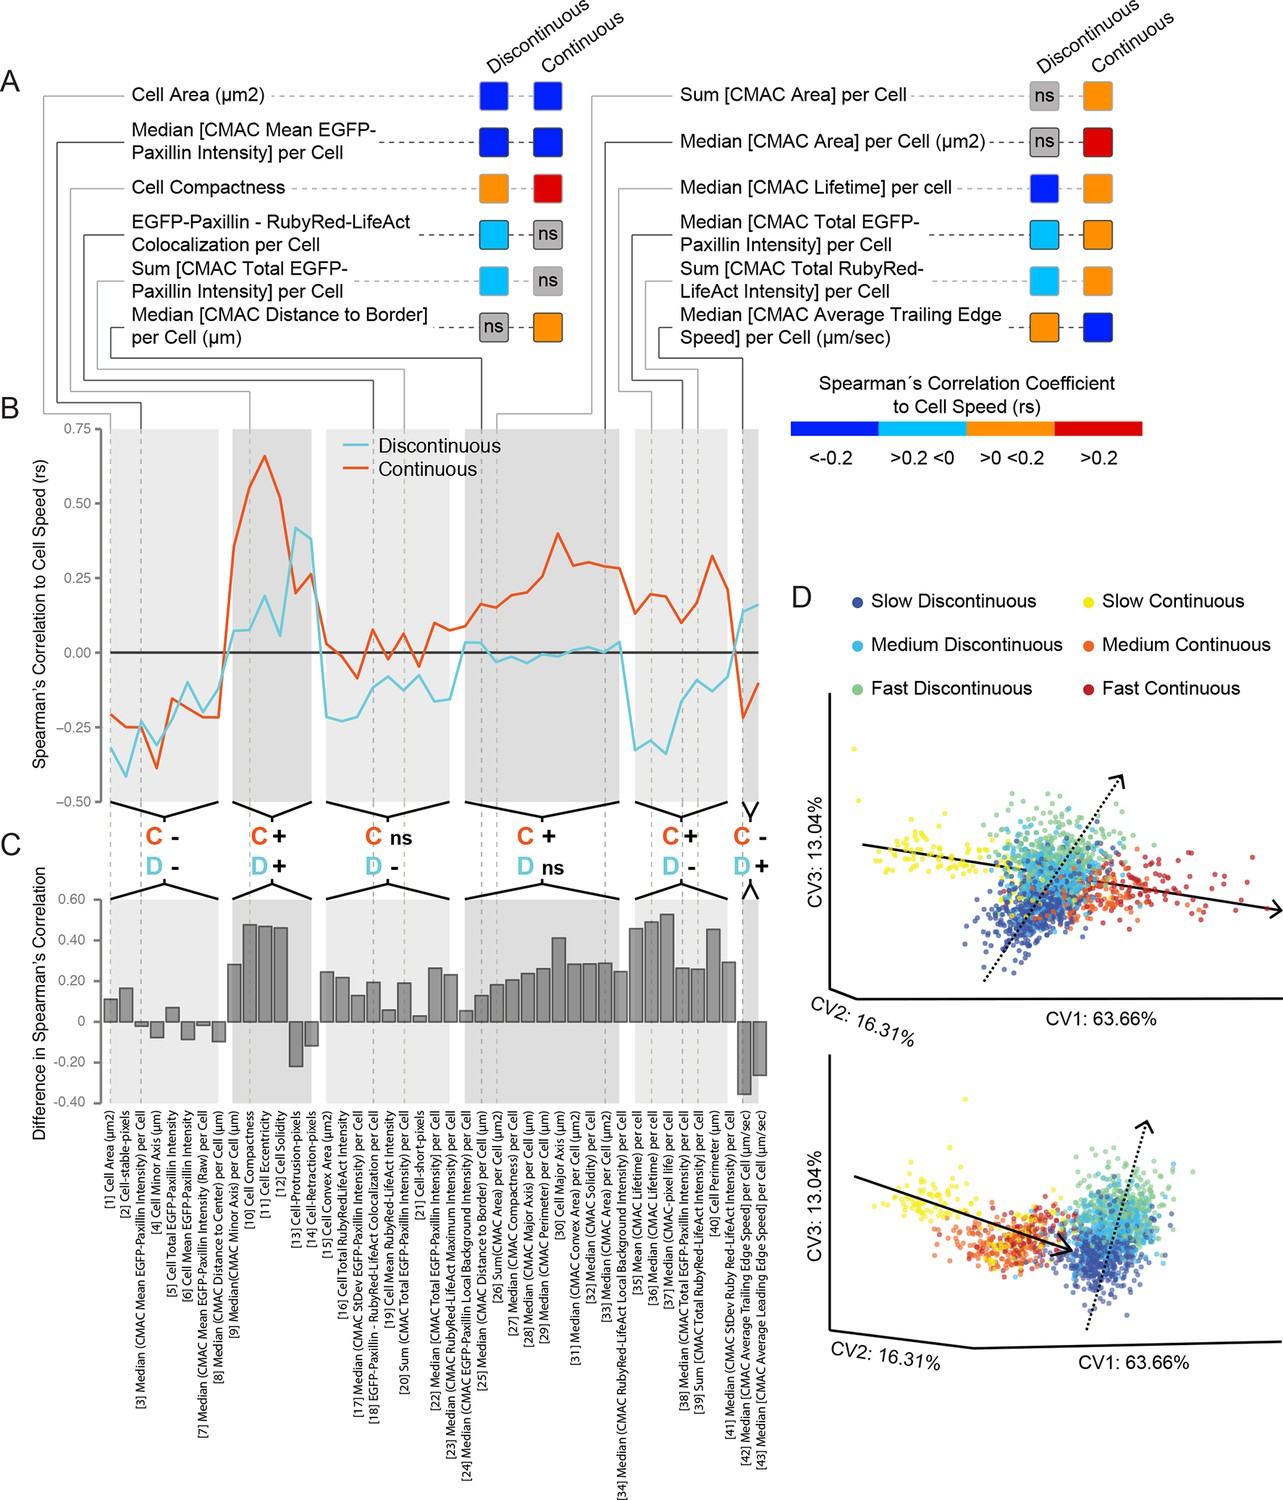 An analysis toolbox to explore mesenchymal migration heterogeneity